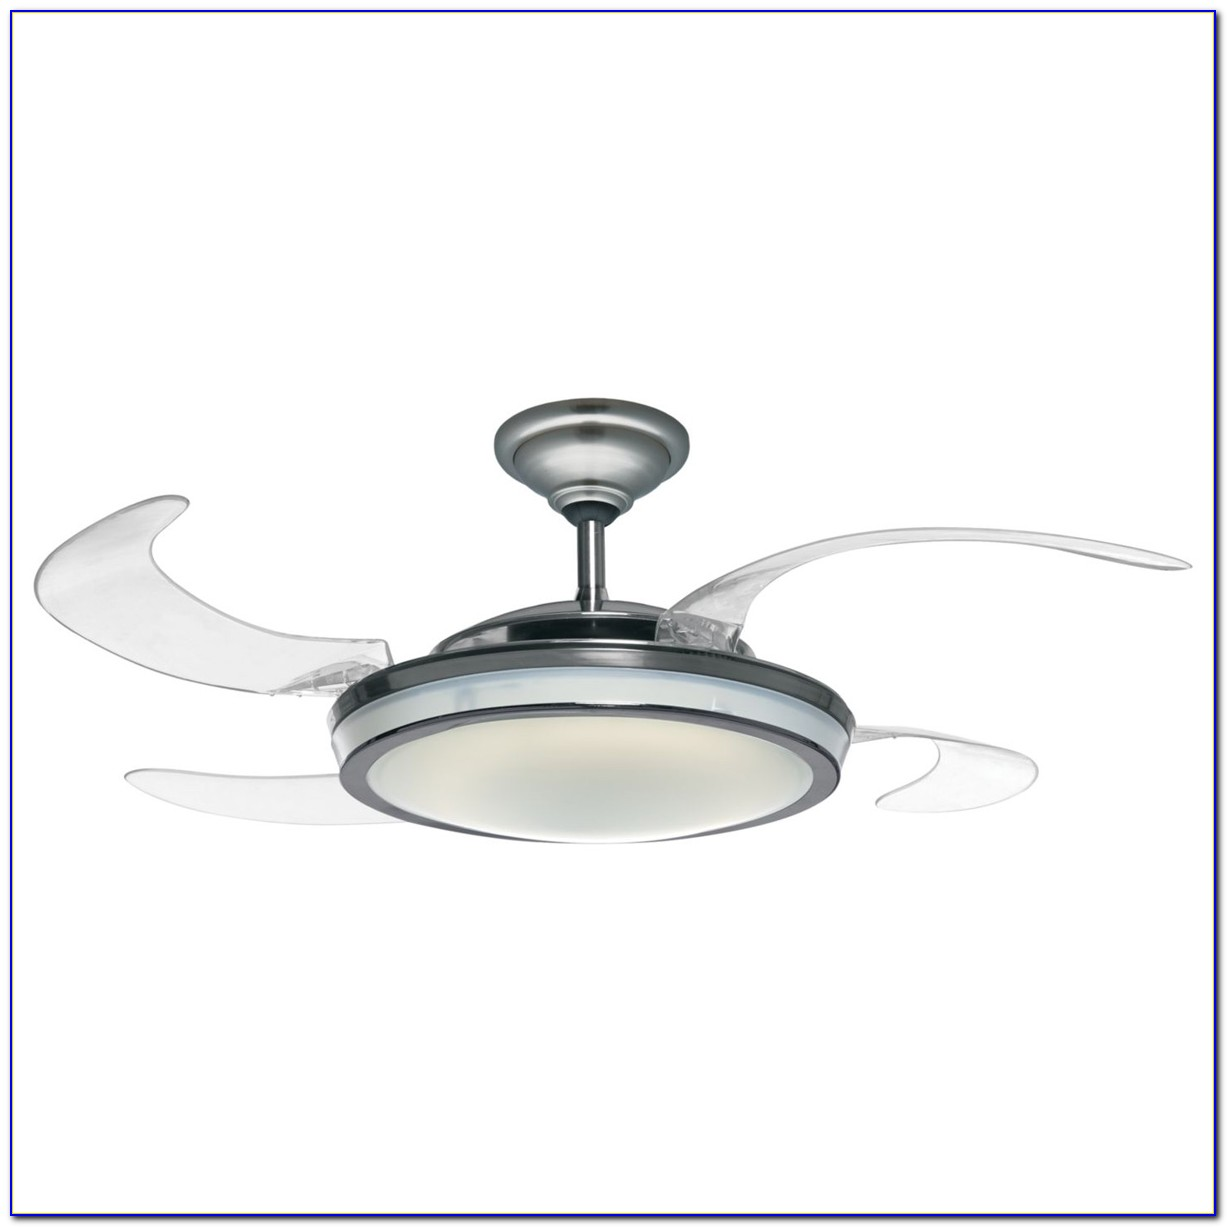 Globo E27 Ceiling Fan With Clear Blades